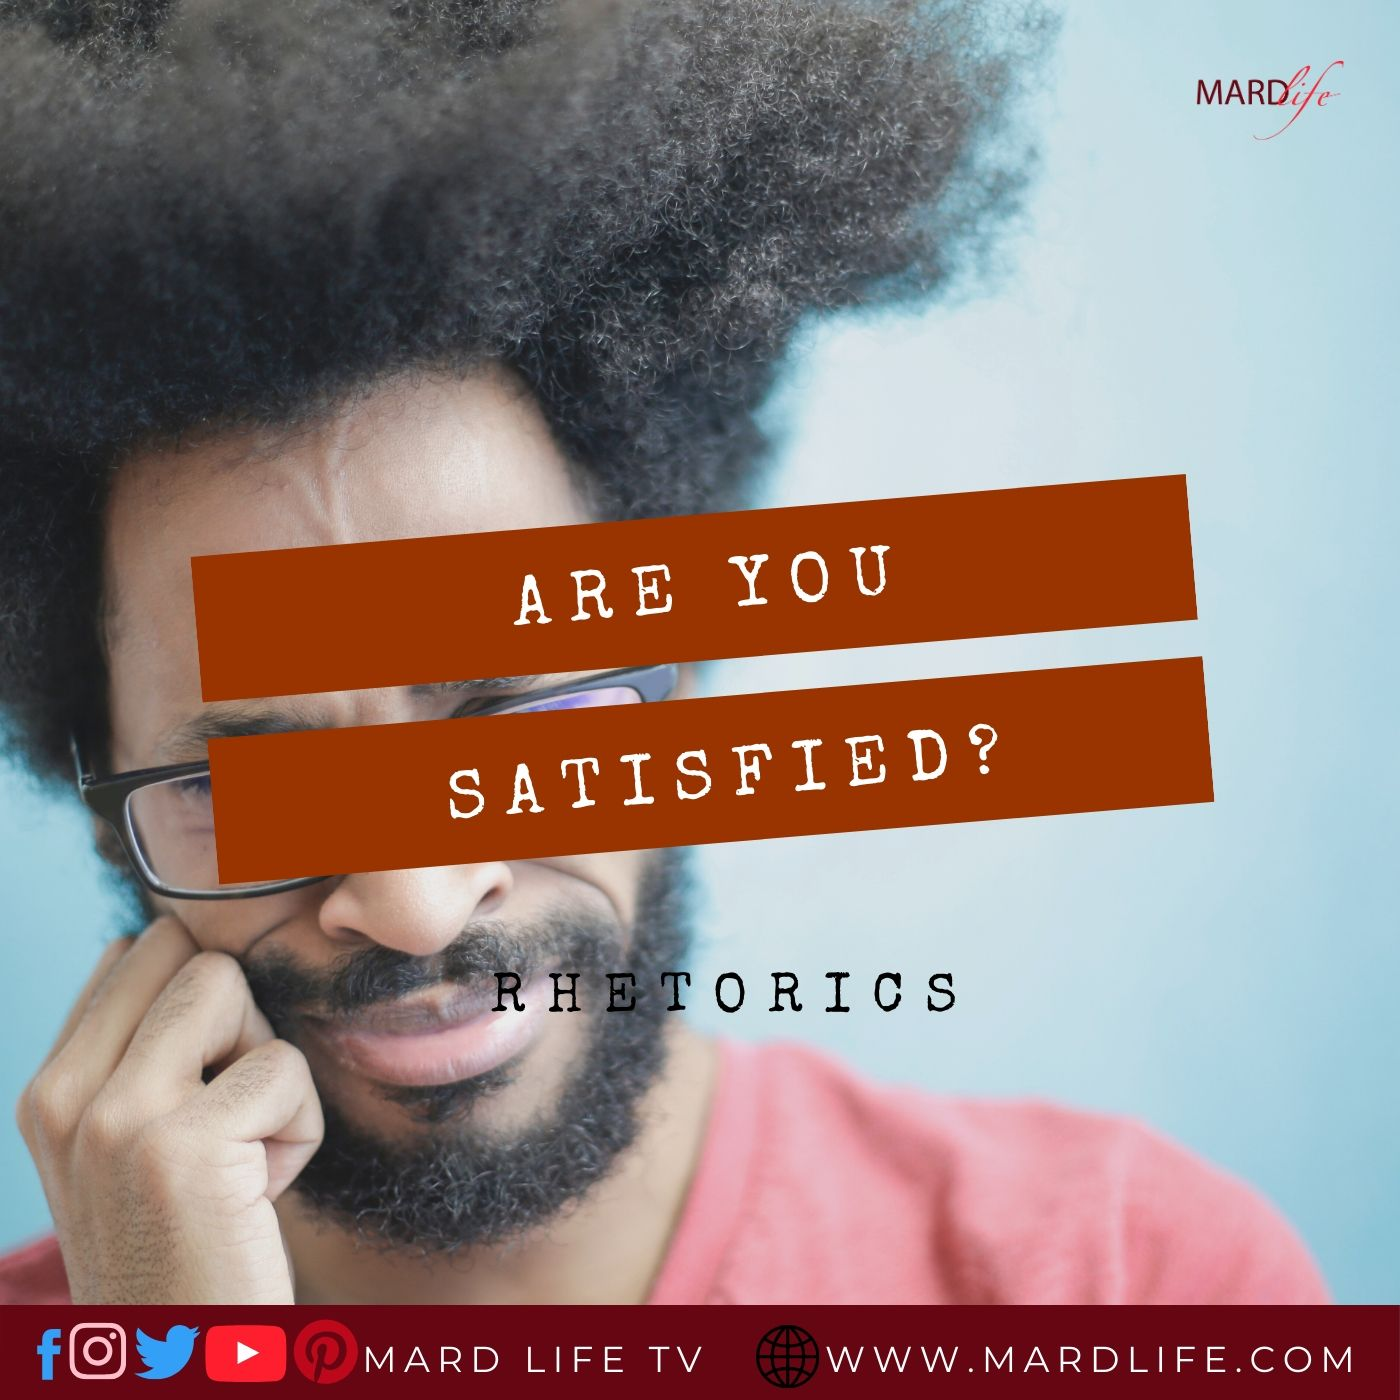 Are You Satisfied? – RHETORICS